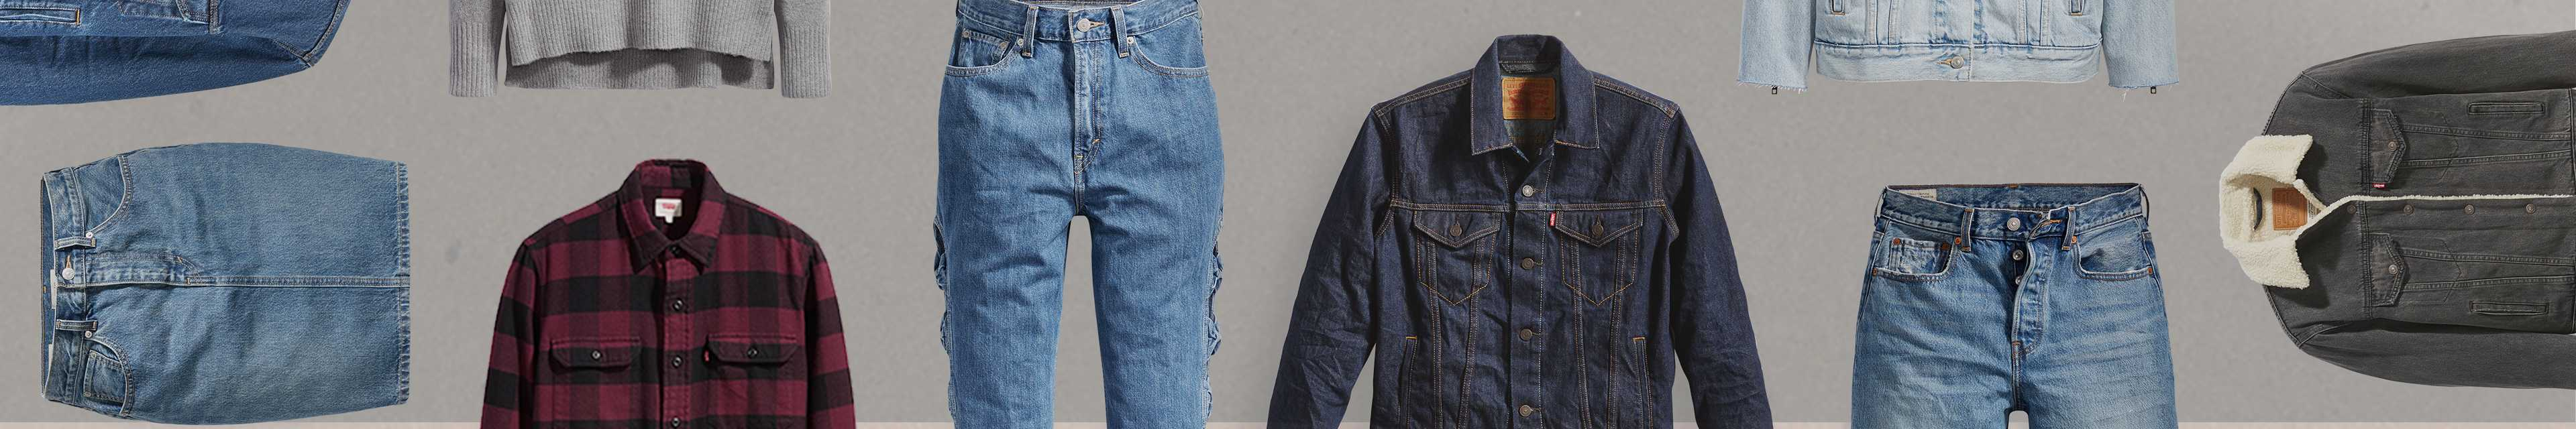 Jeans, Denim Jackets & Clothing | Levi\'s® Official Site